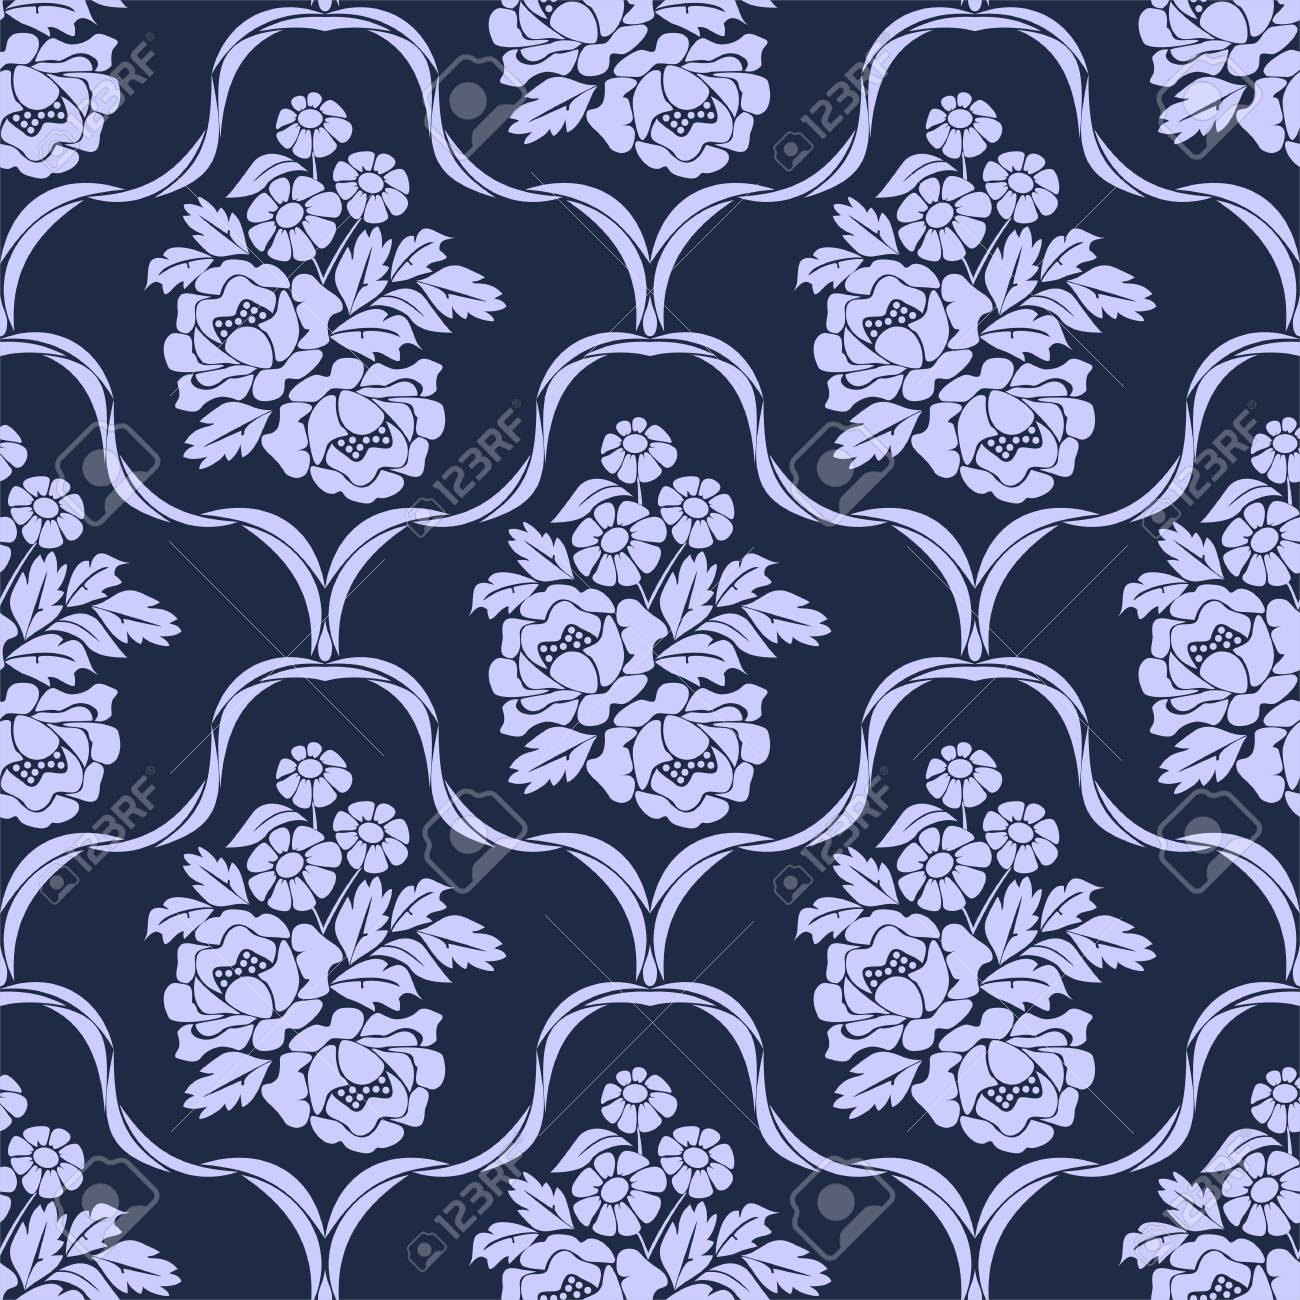 Elegant seamless retro Wallpaper - Ornament with bouquet of Flowers - 97509757